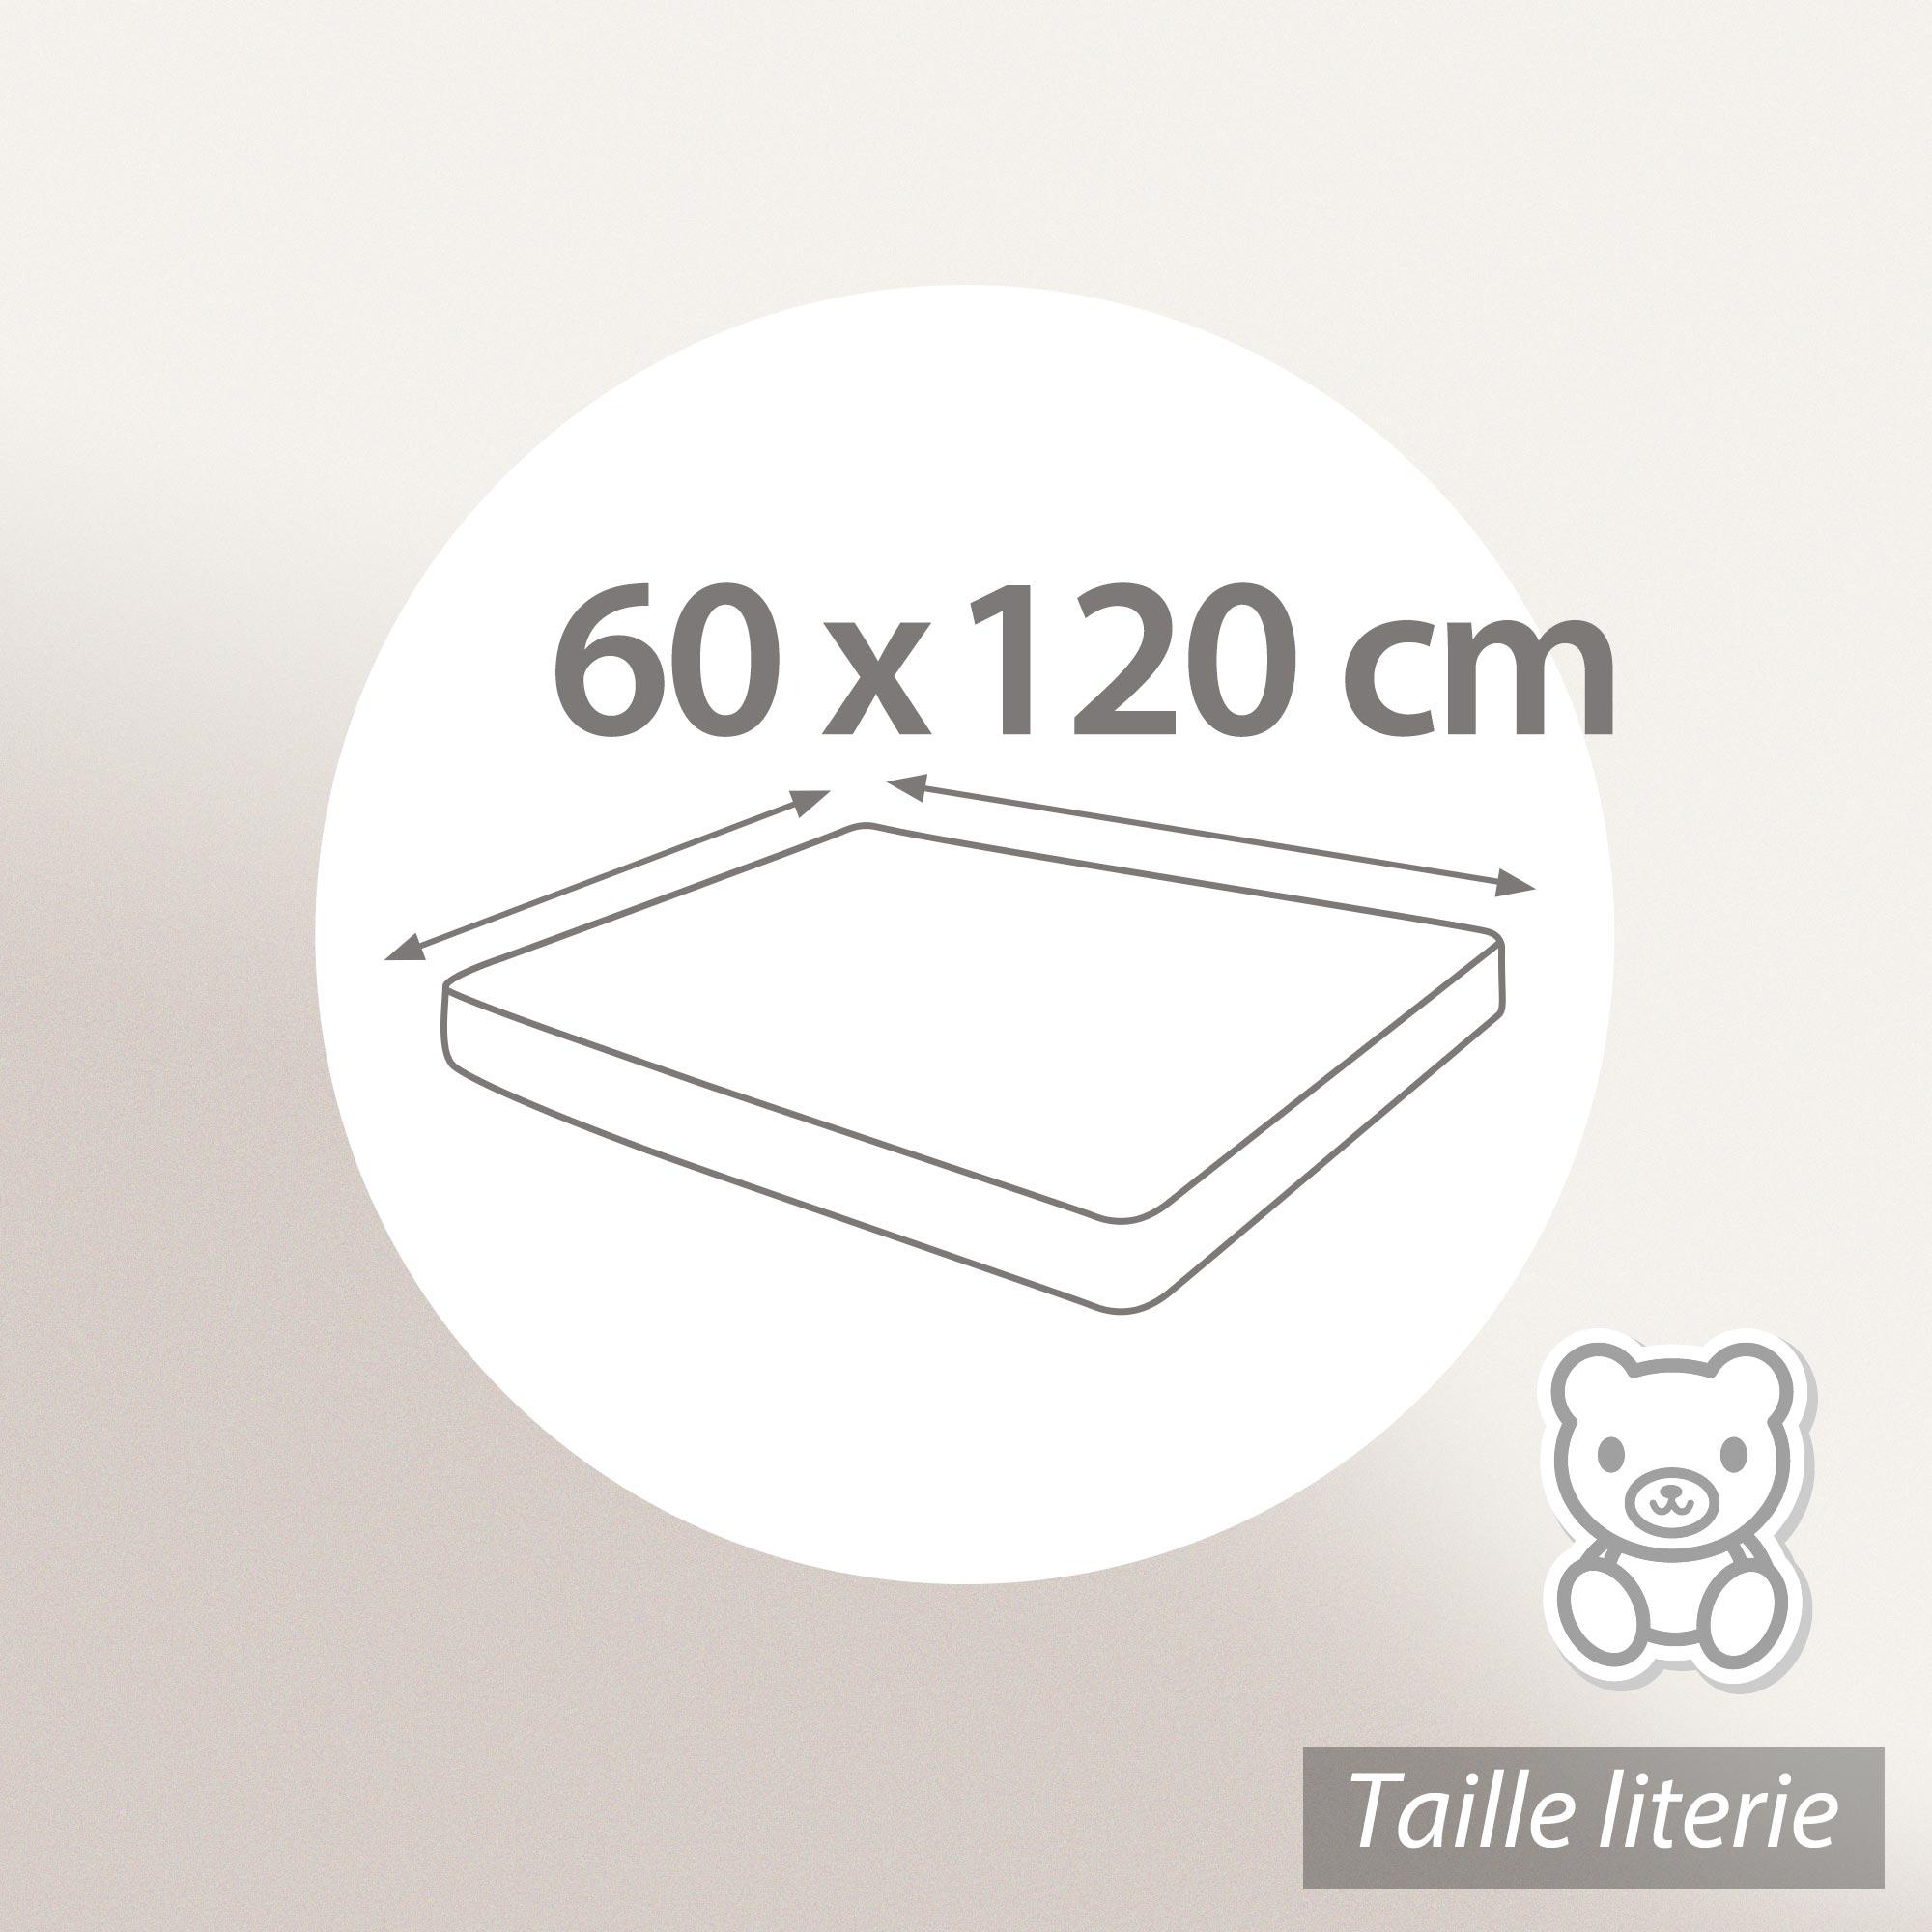 prot ge matelas imperm able 60x120 cm bonnet 15cm arnon molleton 100 coton contrecoll. Black Bedroom Furniture Sets. Home Design Ideas